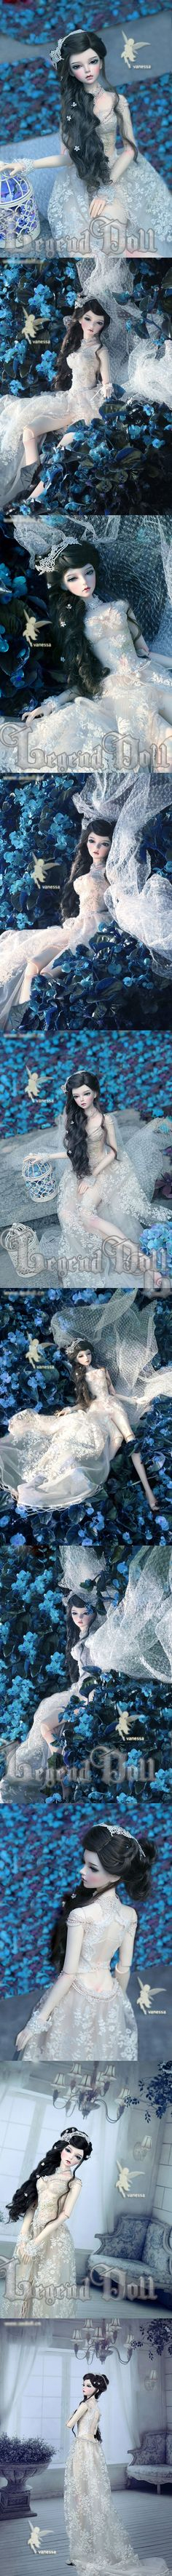 BJD Vanessa 63cm Girl Ball-jointed Doll_58 ~ 65cm doll_ASLEEP EIDOLON_DOLL_Ball Jointed Dolls (BJD) company-Legenddoll